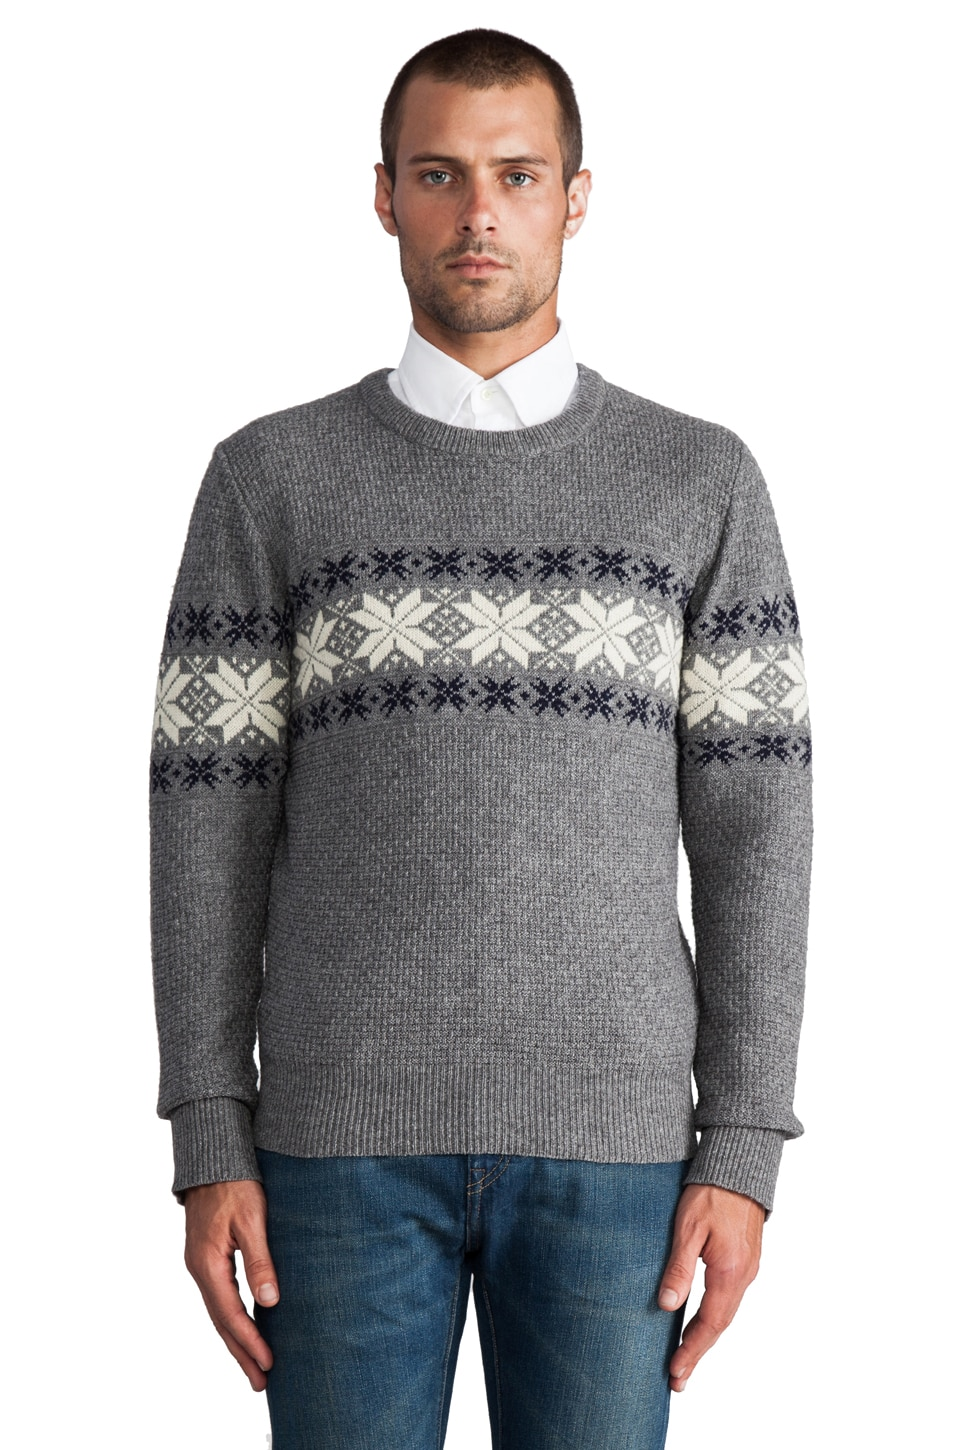 GANT Rugger Flakey Sholder Sweater in Dark Grey Melange